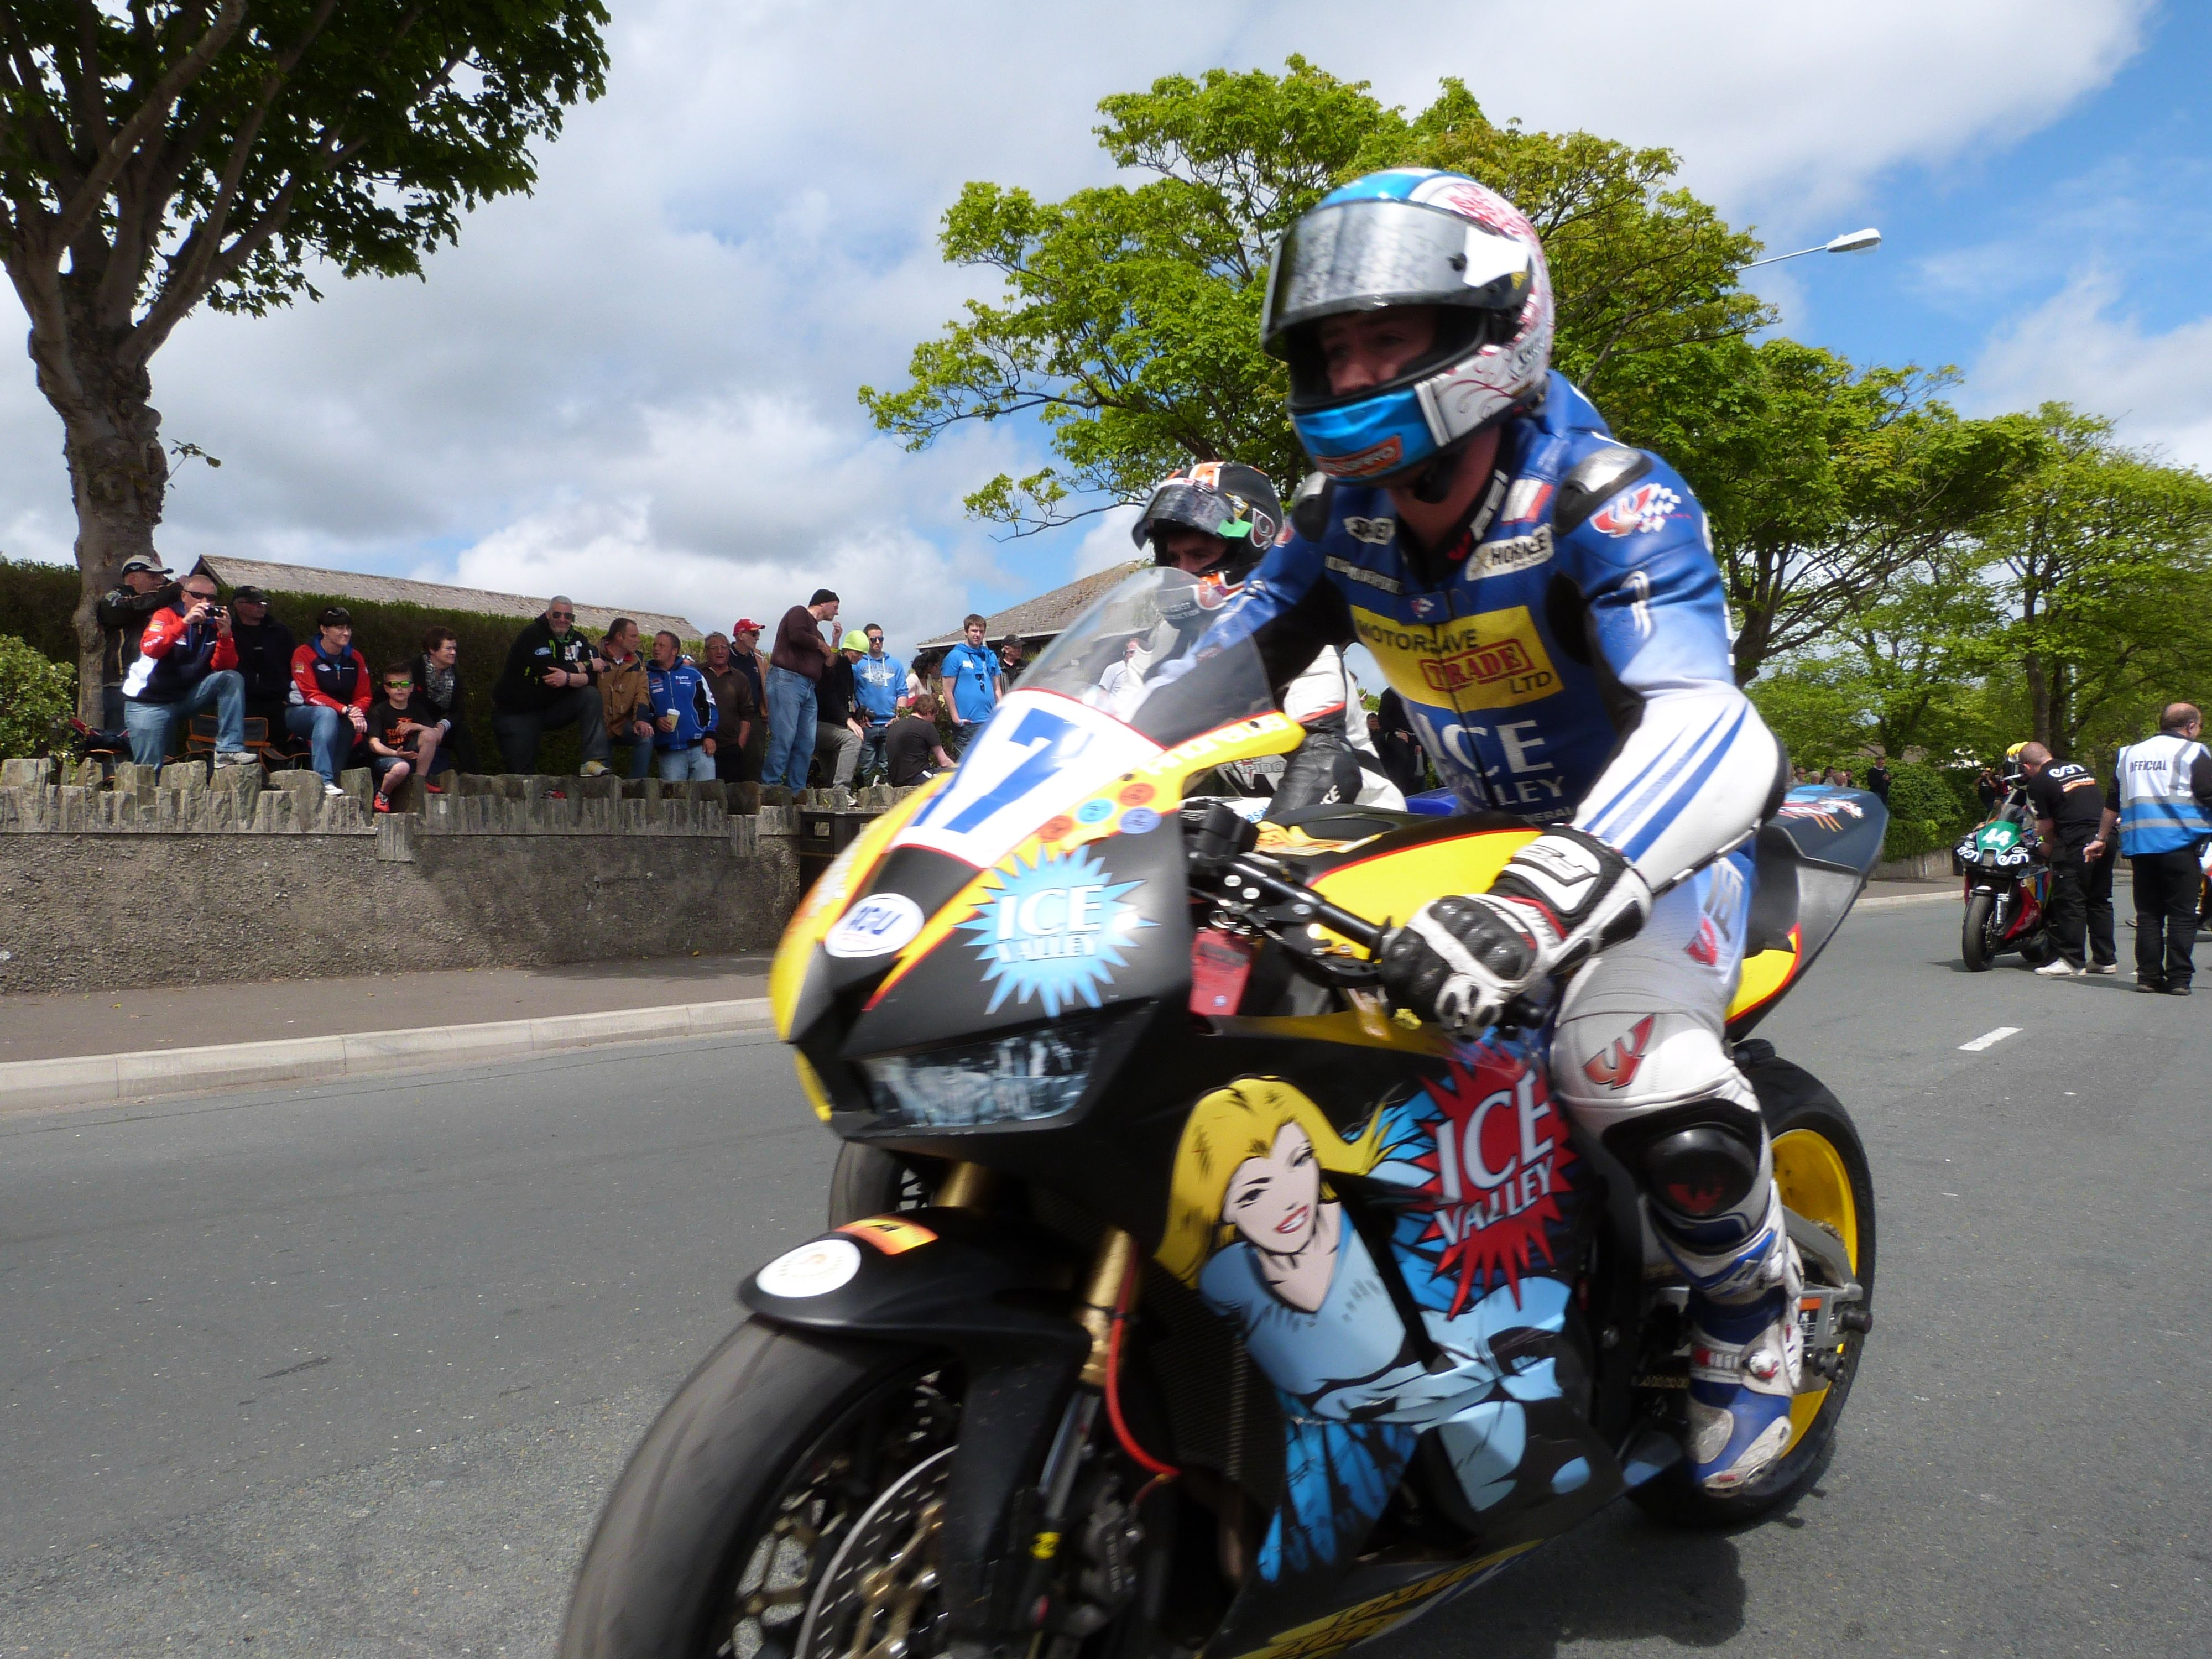 Simon Andrews at TT 2013 competing for Ice Valley racing by Motorsave ltd on a R6 Yamaha in the supersport races.